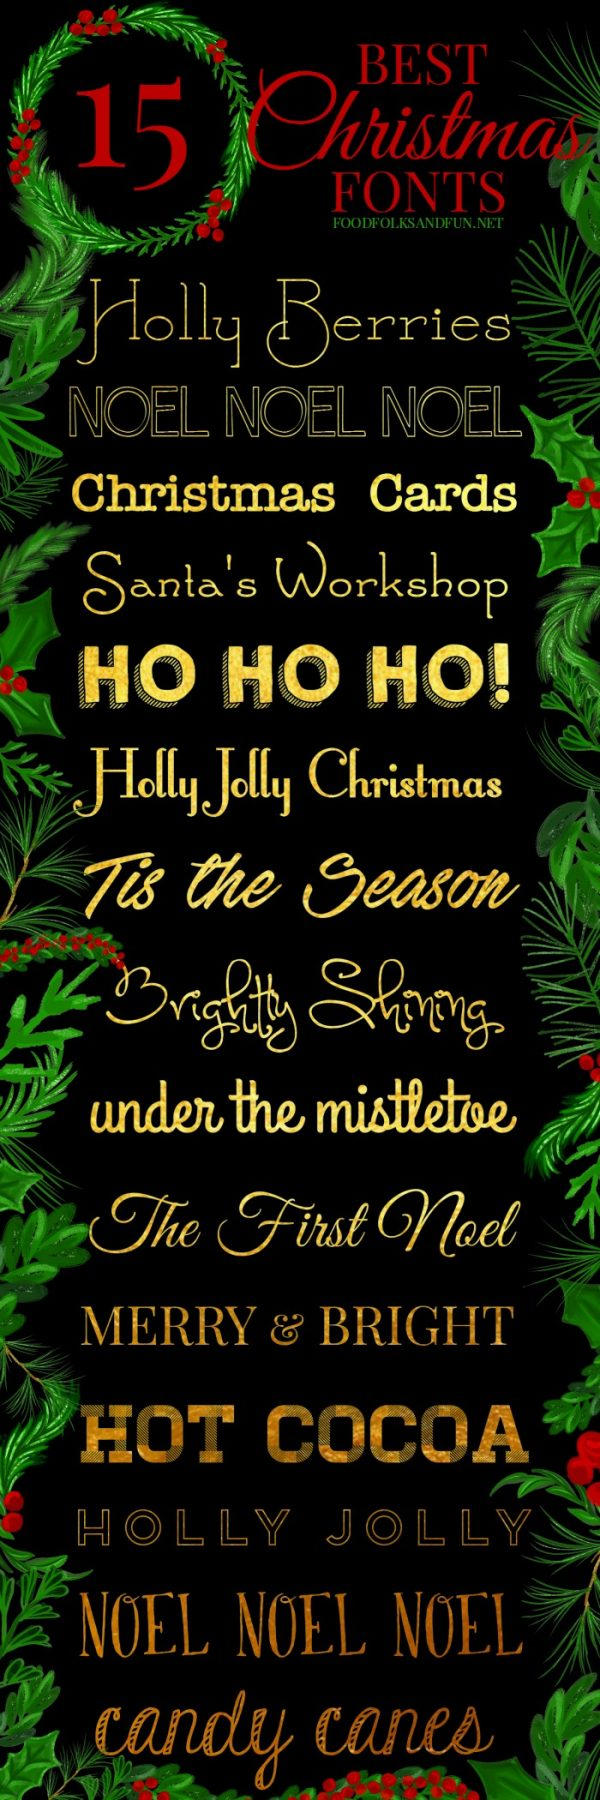 the best free christmas fonts these are perfect for all things holiday gift - Christmas Fonts Free